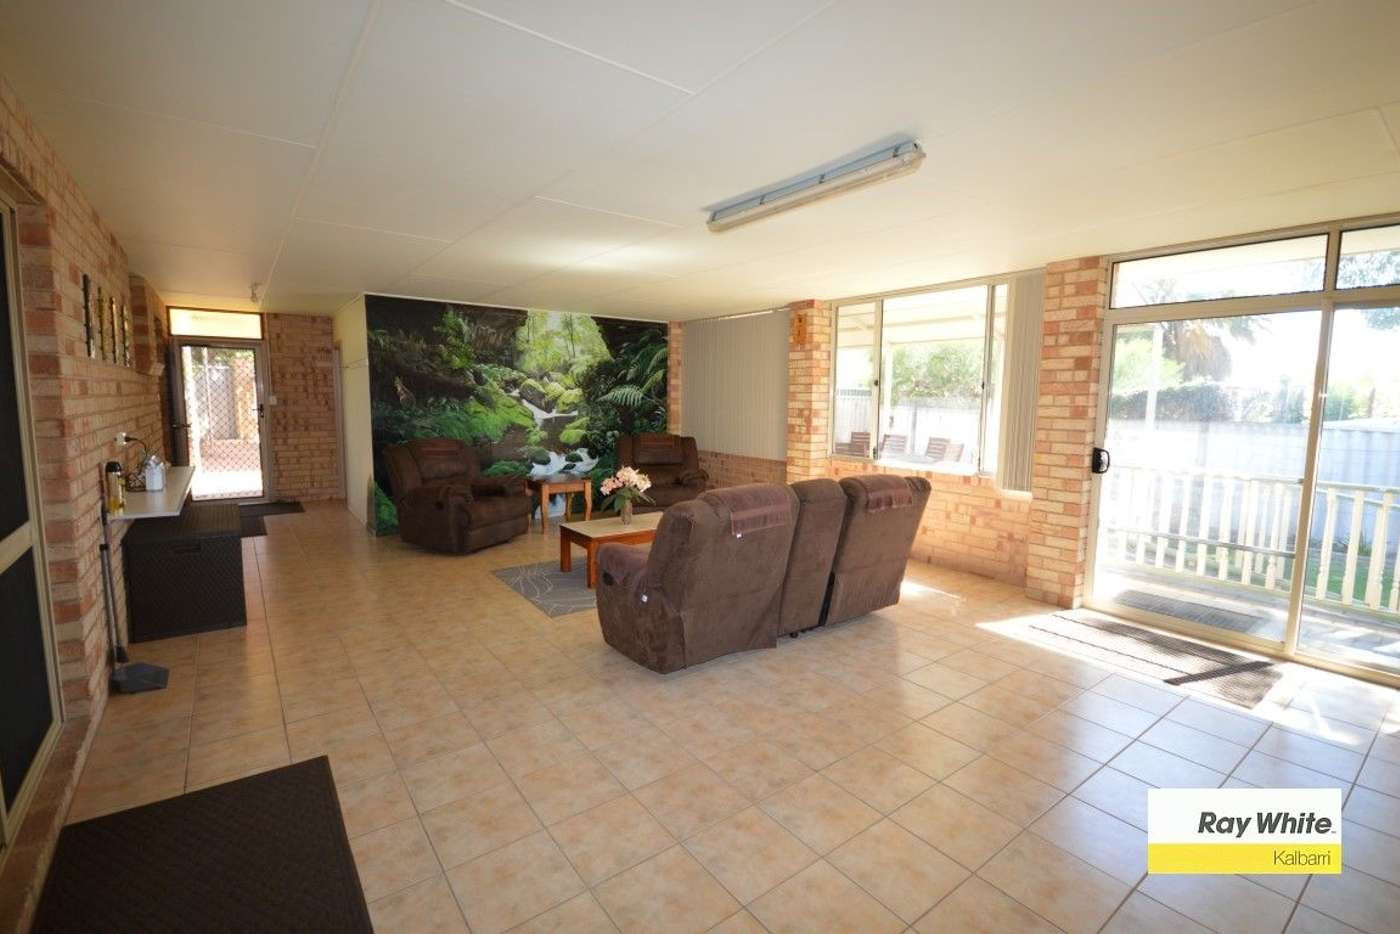 Sixth view of Homely house listing, 1 Cygnet Court, Kalbarri WA 6536